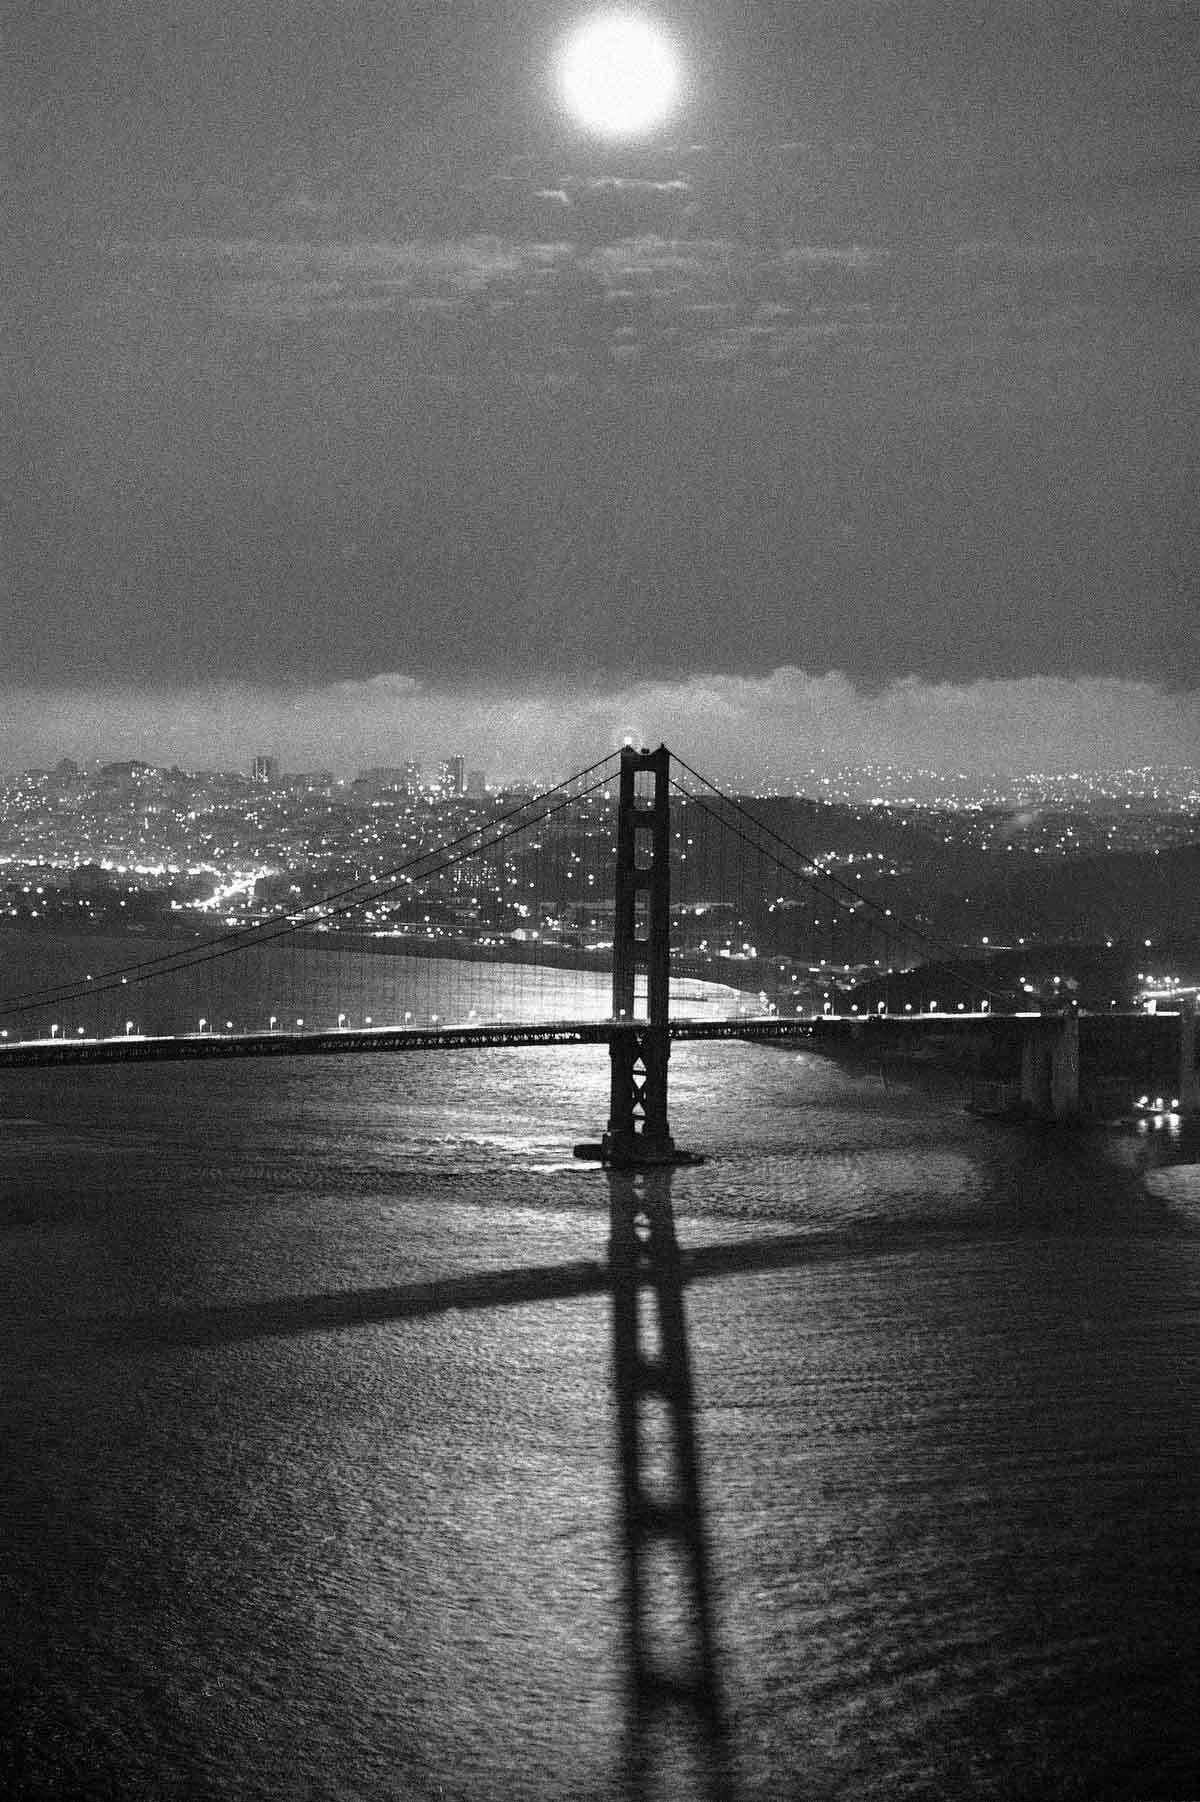 The moon shines down on the Golden Gate Bridge in San Francisco, Monday, July 6, 1982 on the night of the lunar eclipse. It was the longest total lunar eclipse of the century which began at 10:22 p.m. PDT. In the background is the San Francisco skyline. (AP Photo/Paul Sakuma)